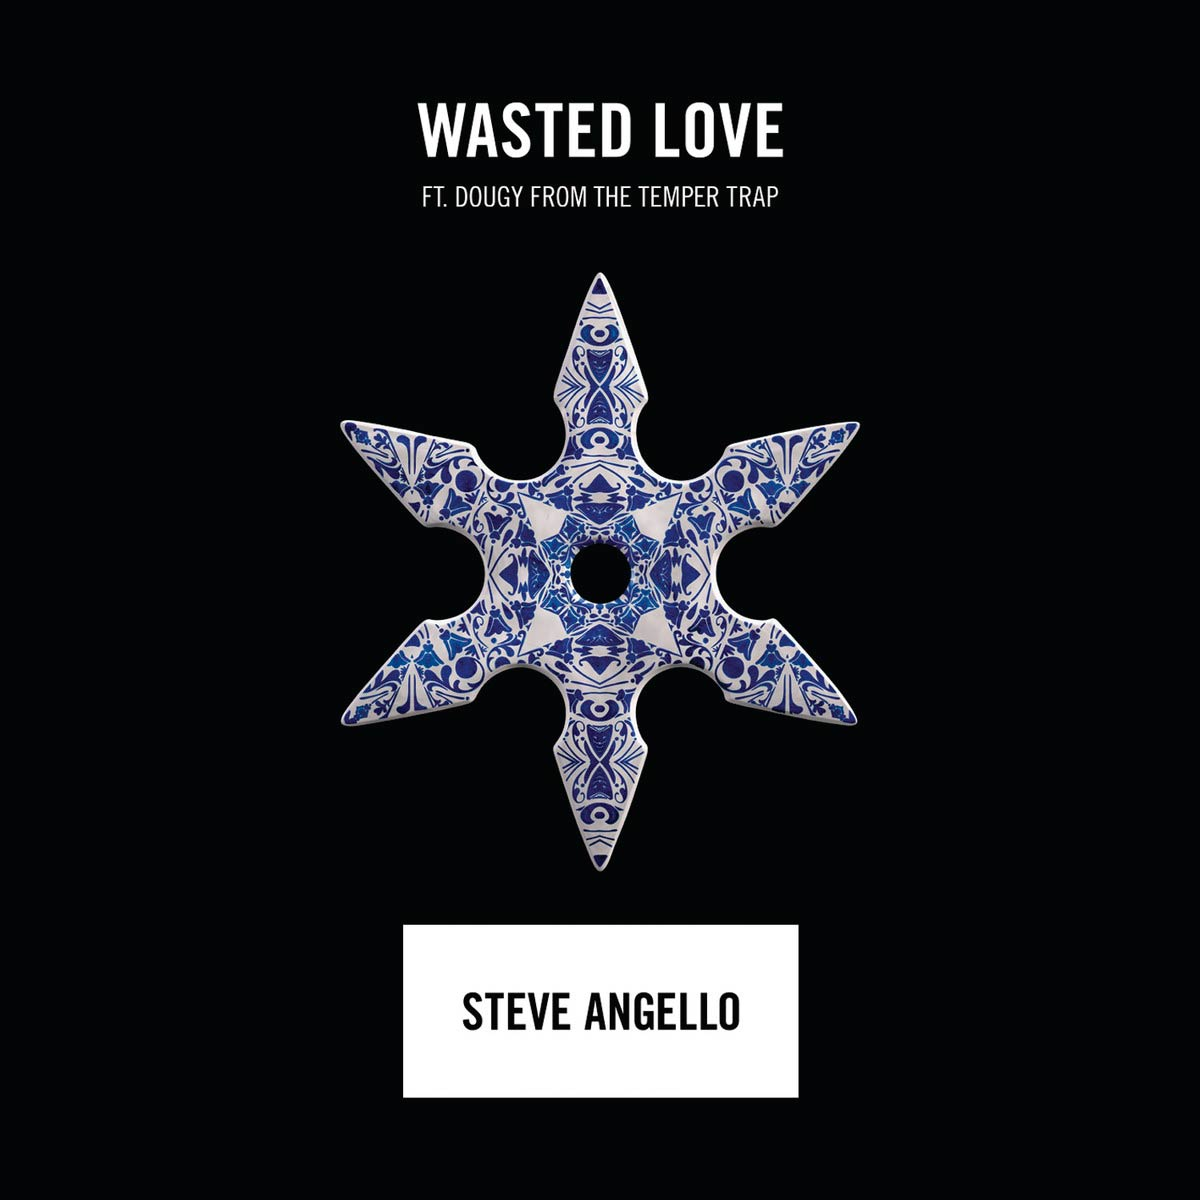 Steve Angello con Dougy: Wasted love - la portada de la canción